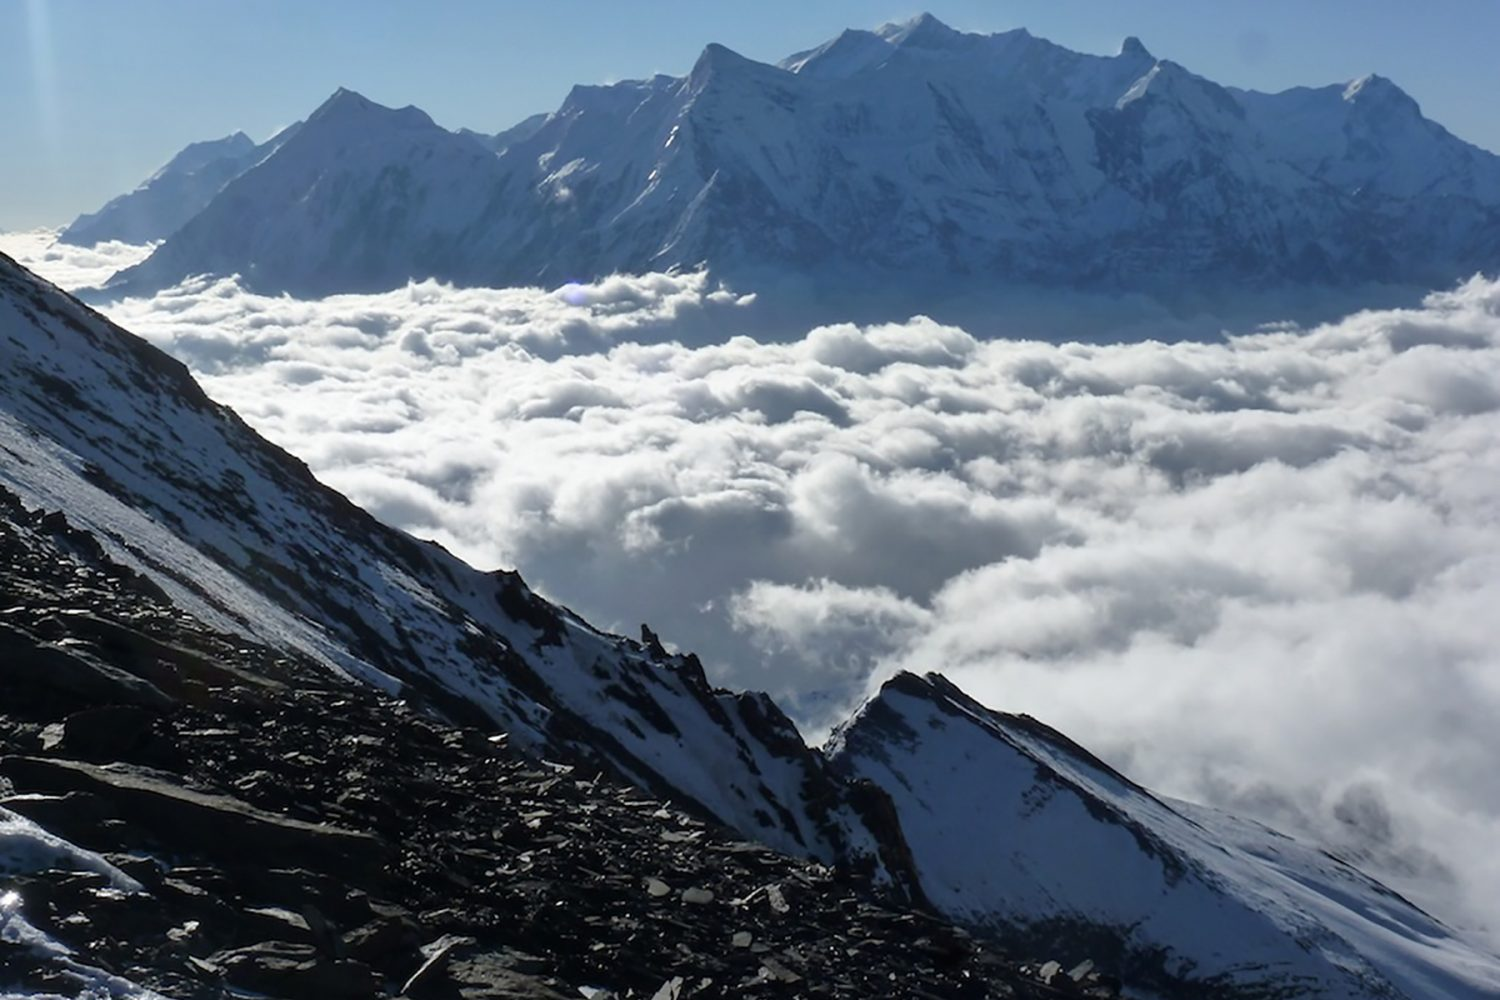 Annapurna is an island in the clouds